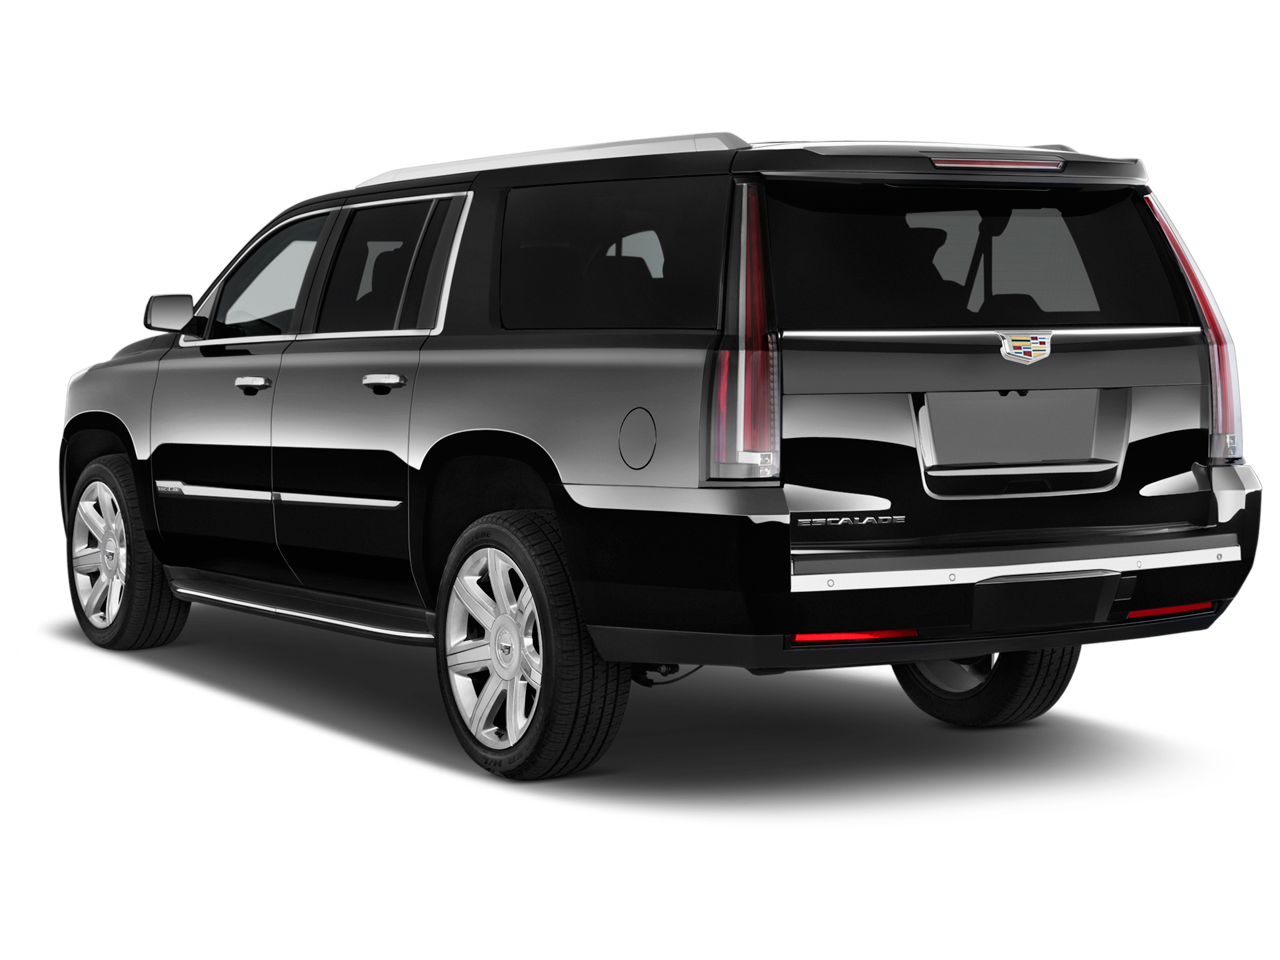 2018 cadillac escalade release date price ext 2018 autos post. Black Bedroom Furniture Sets. Home Design Ideas